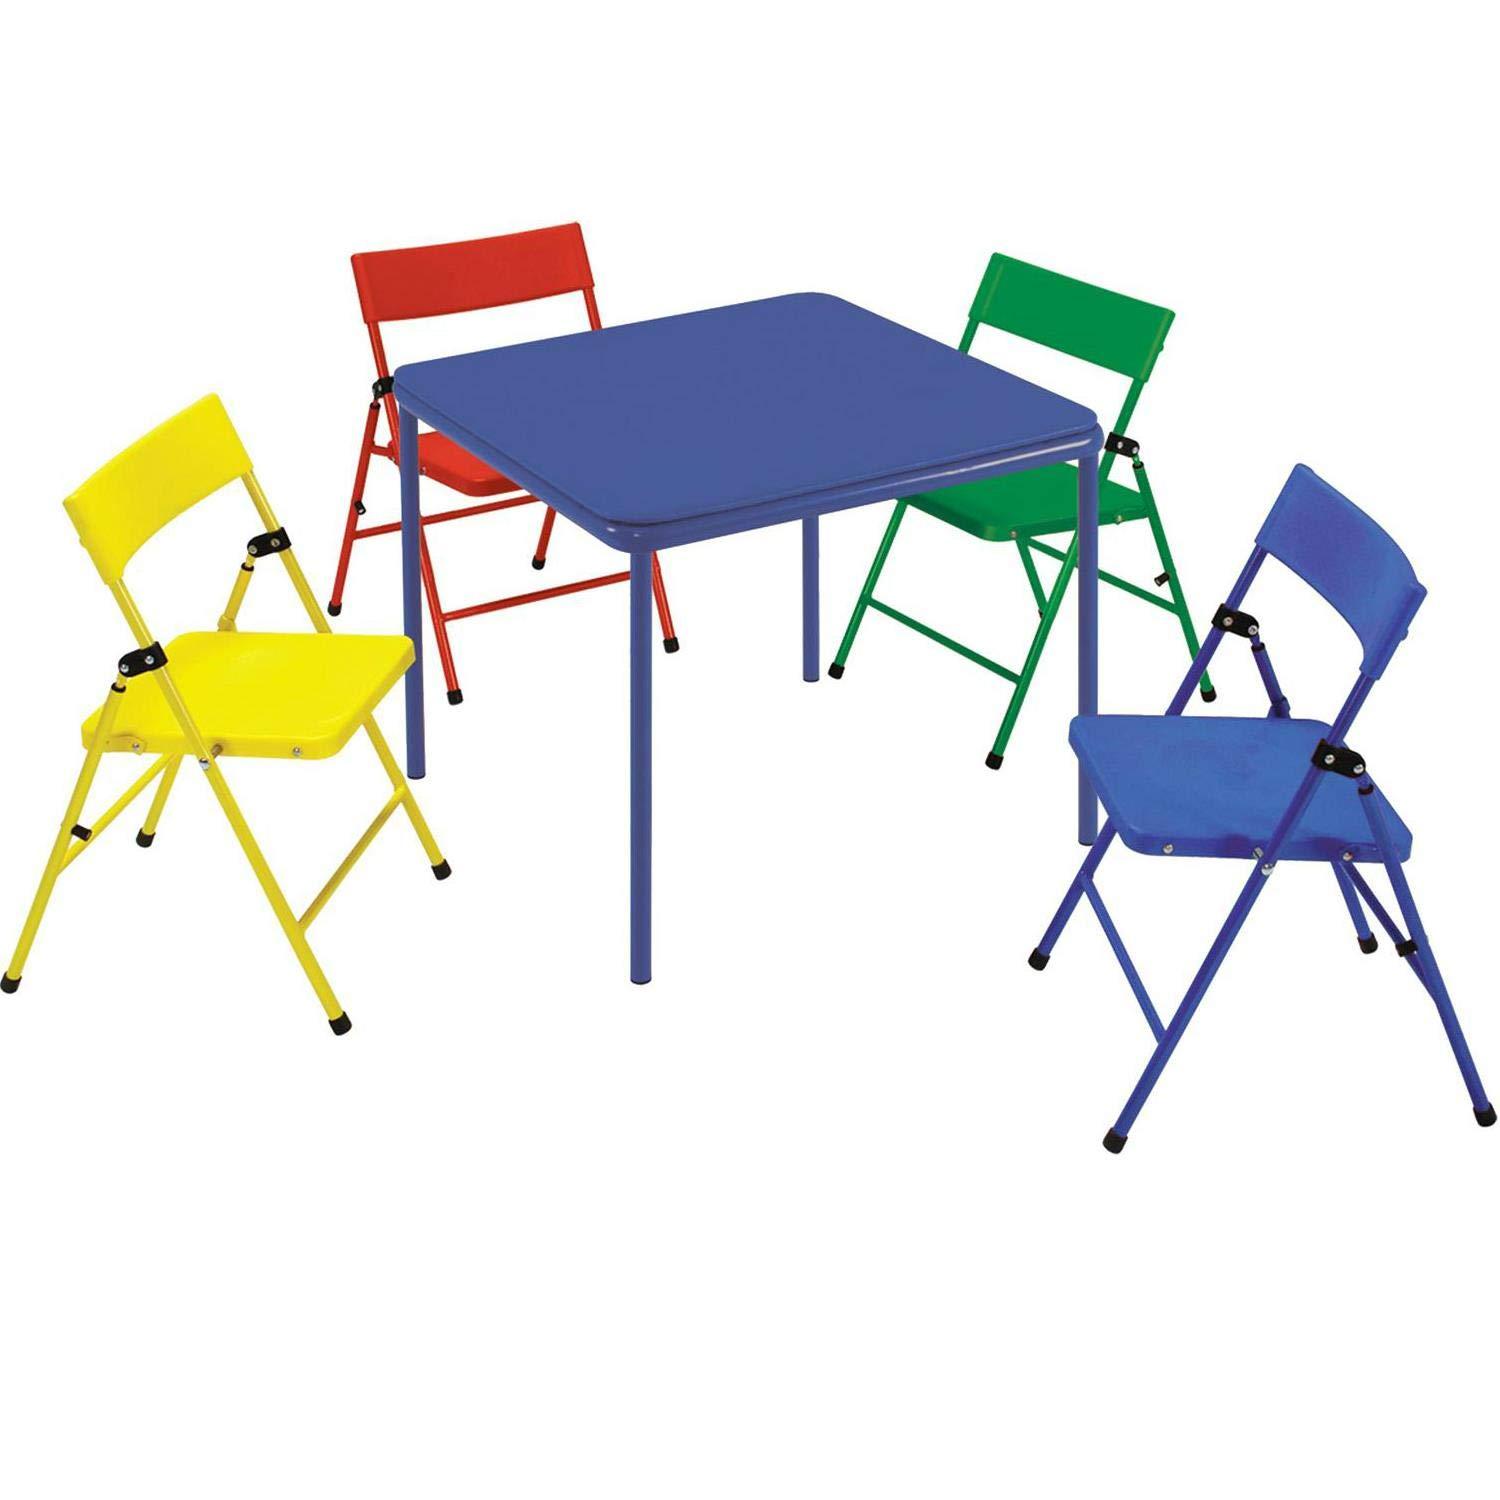 Cosco Safety 1st 5-Piece Kid Table and Chair Set Red/Yellow/Blue by Cosco